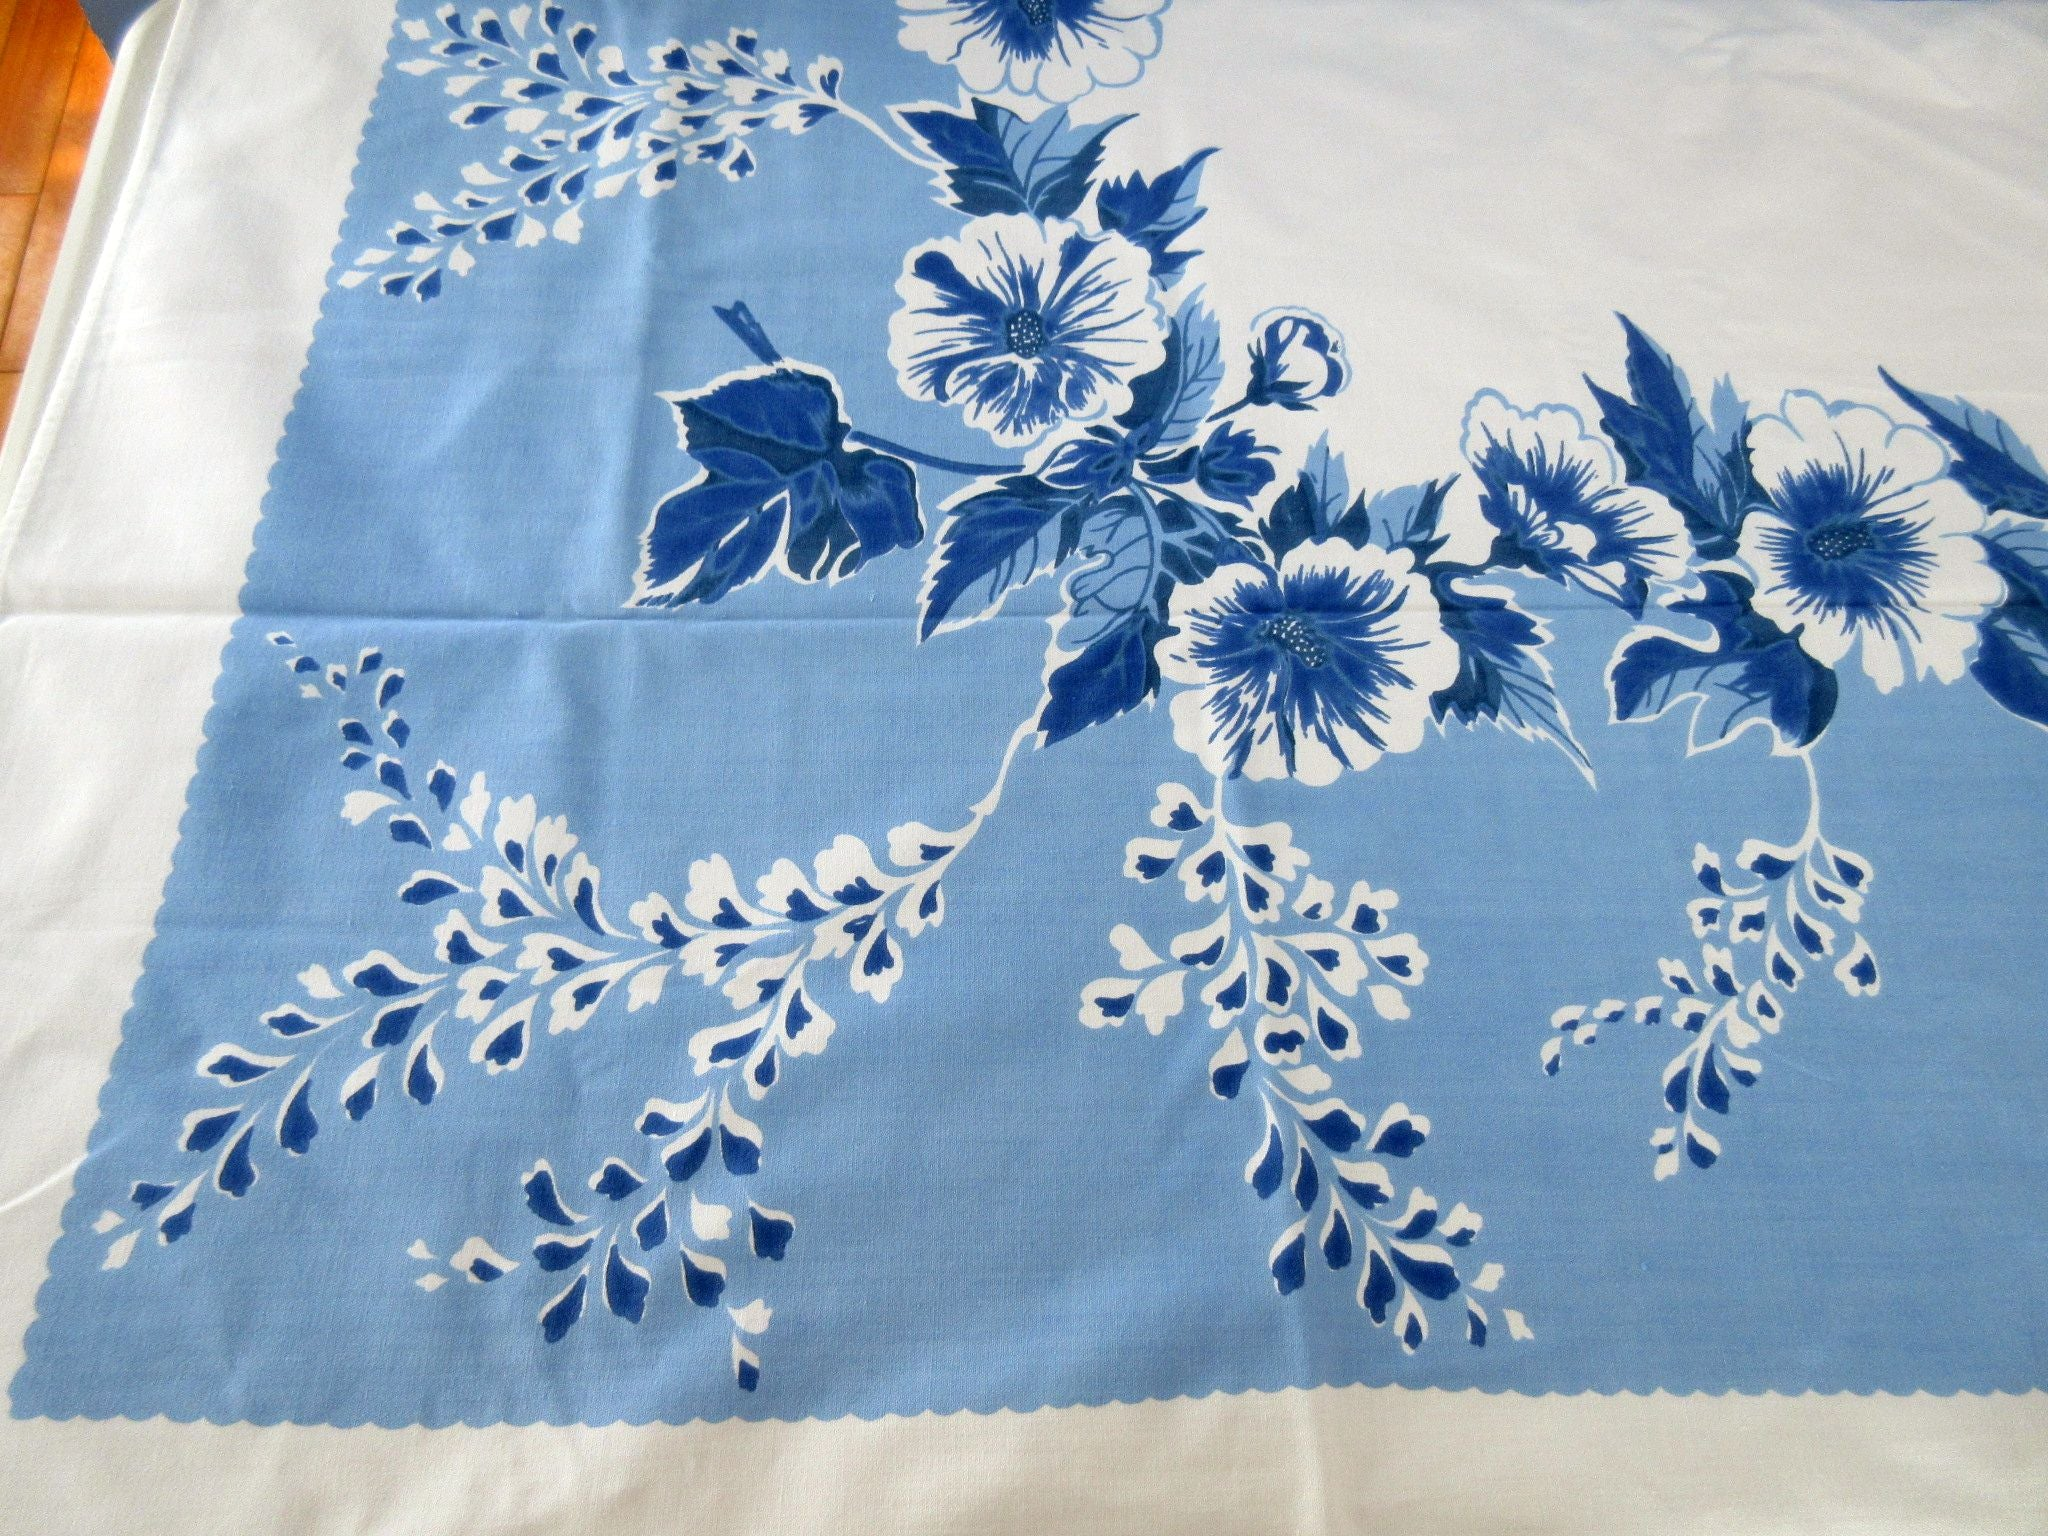 Large Morning Glories on Blue Floral Vintage Printed Tablecloth (64 X 51)